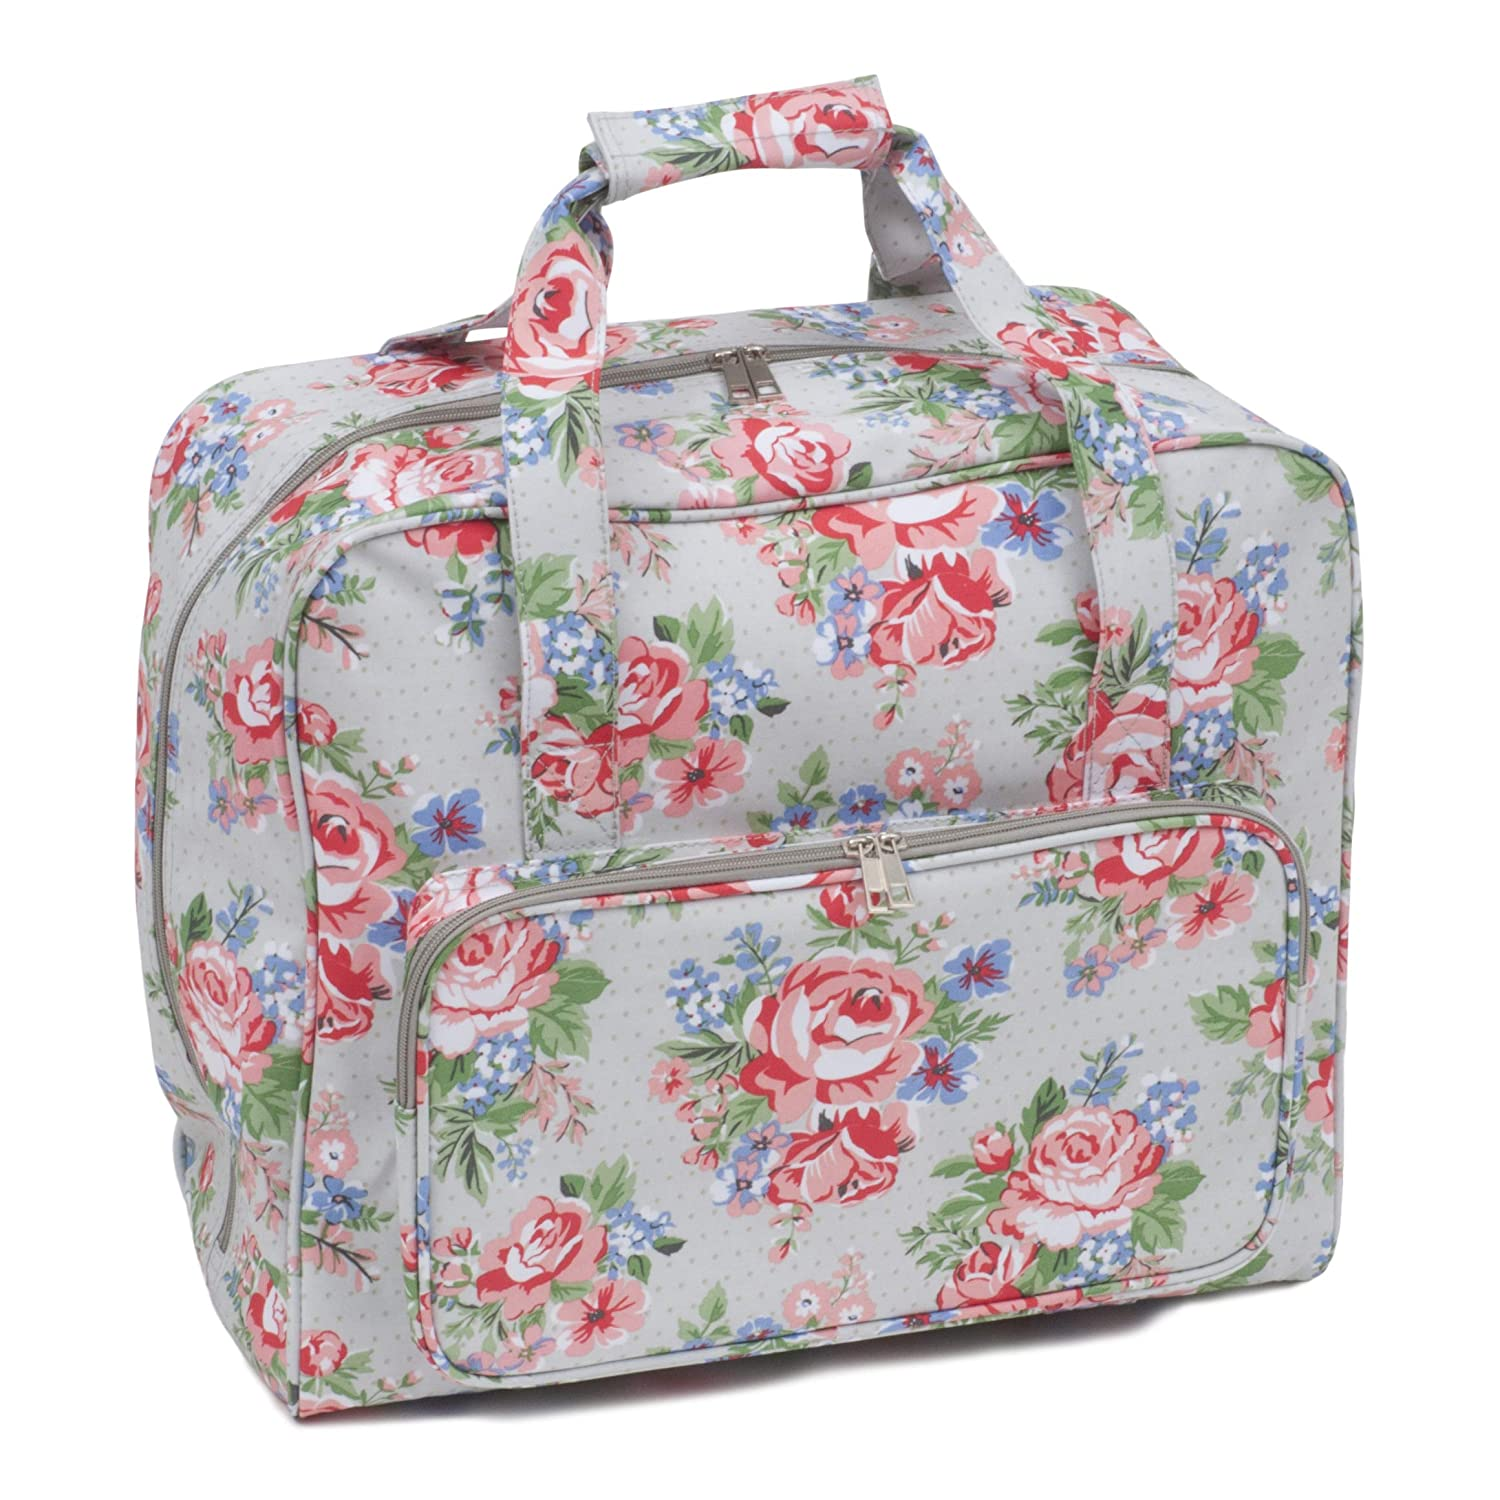 Hobbygift Sewing Machine Bag: Matt PVC: Rose (d/w/h): 20 x 43 x 37cm Groes